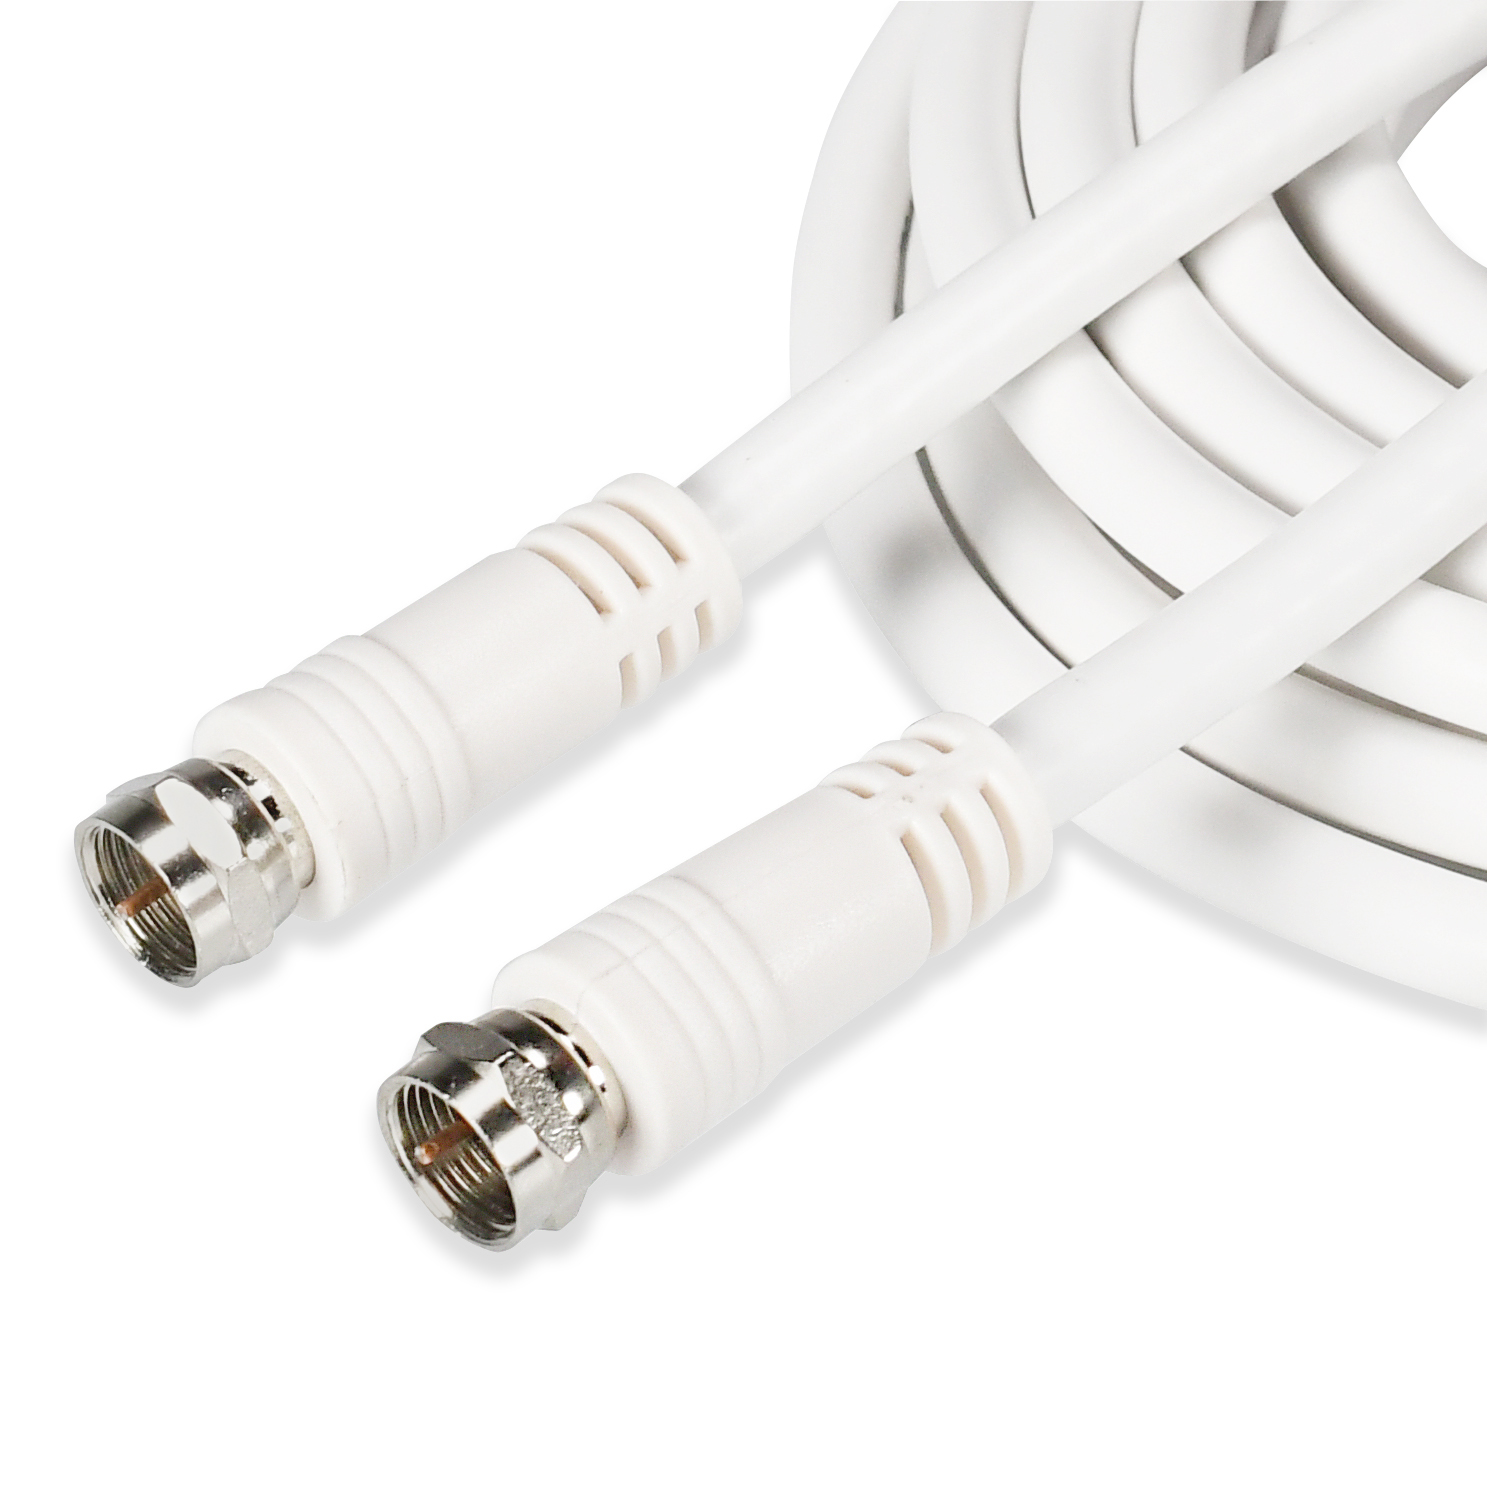 Onn RG-6 Coaxial Cable For F-Type Jack, 2 Connections, 6 Feet